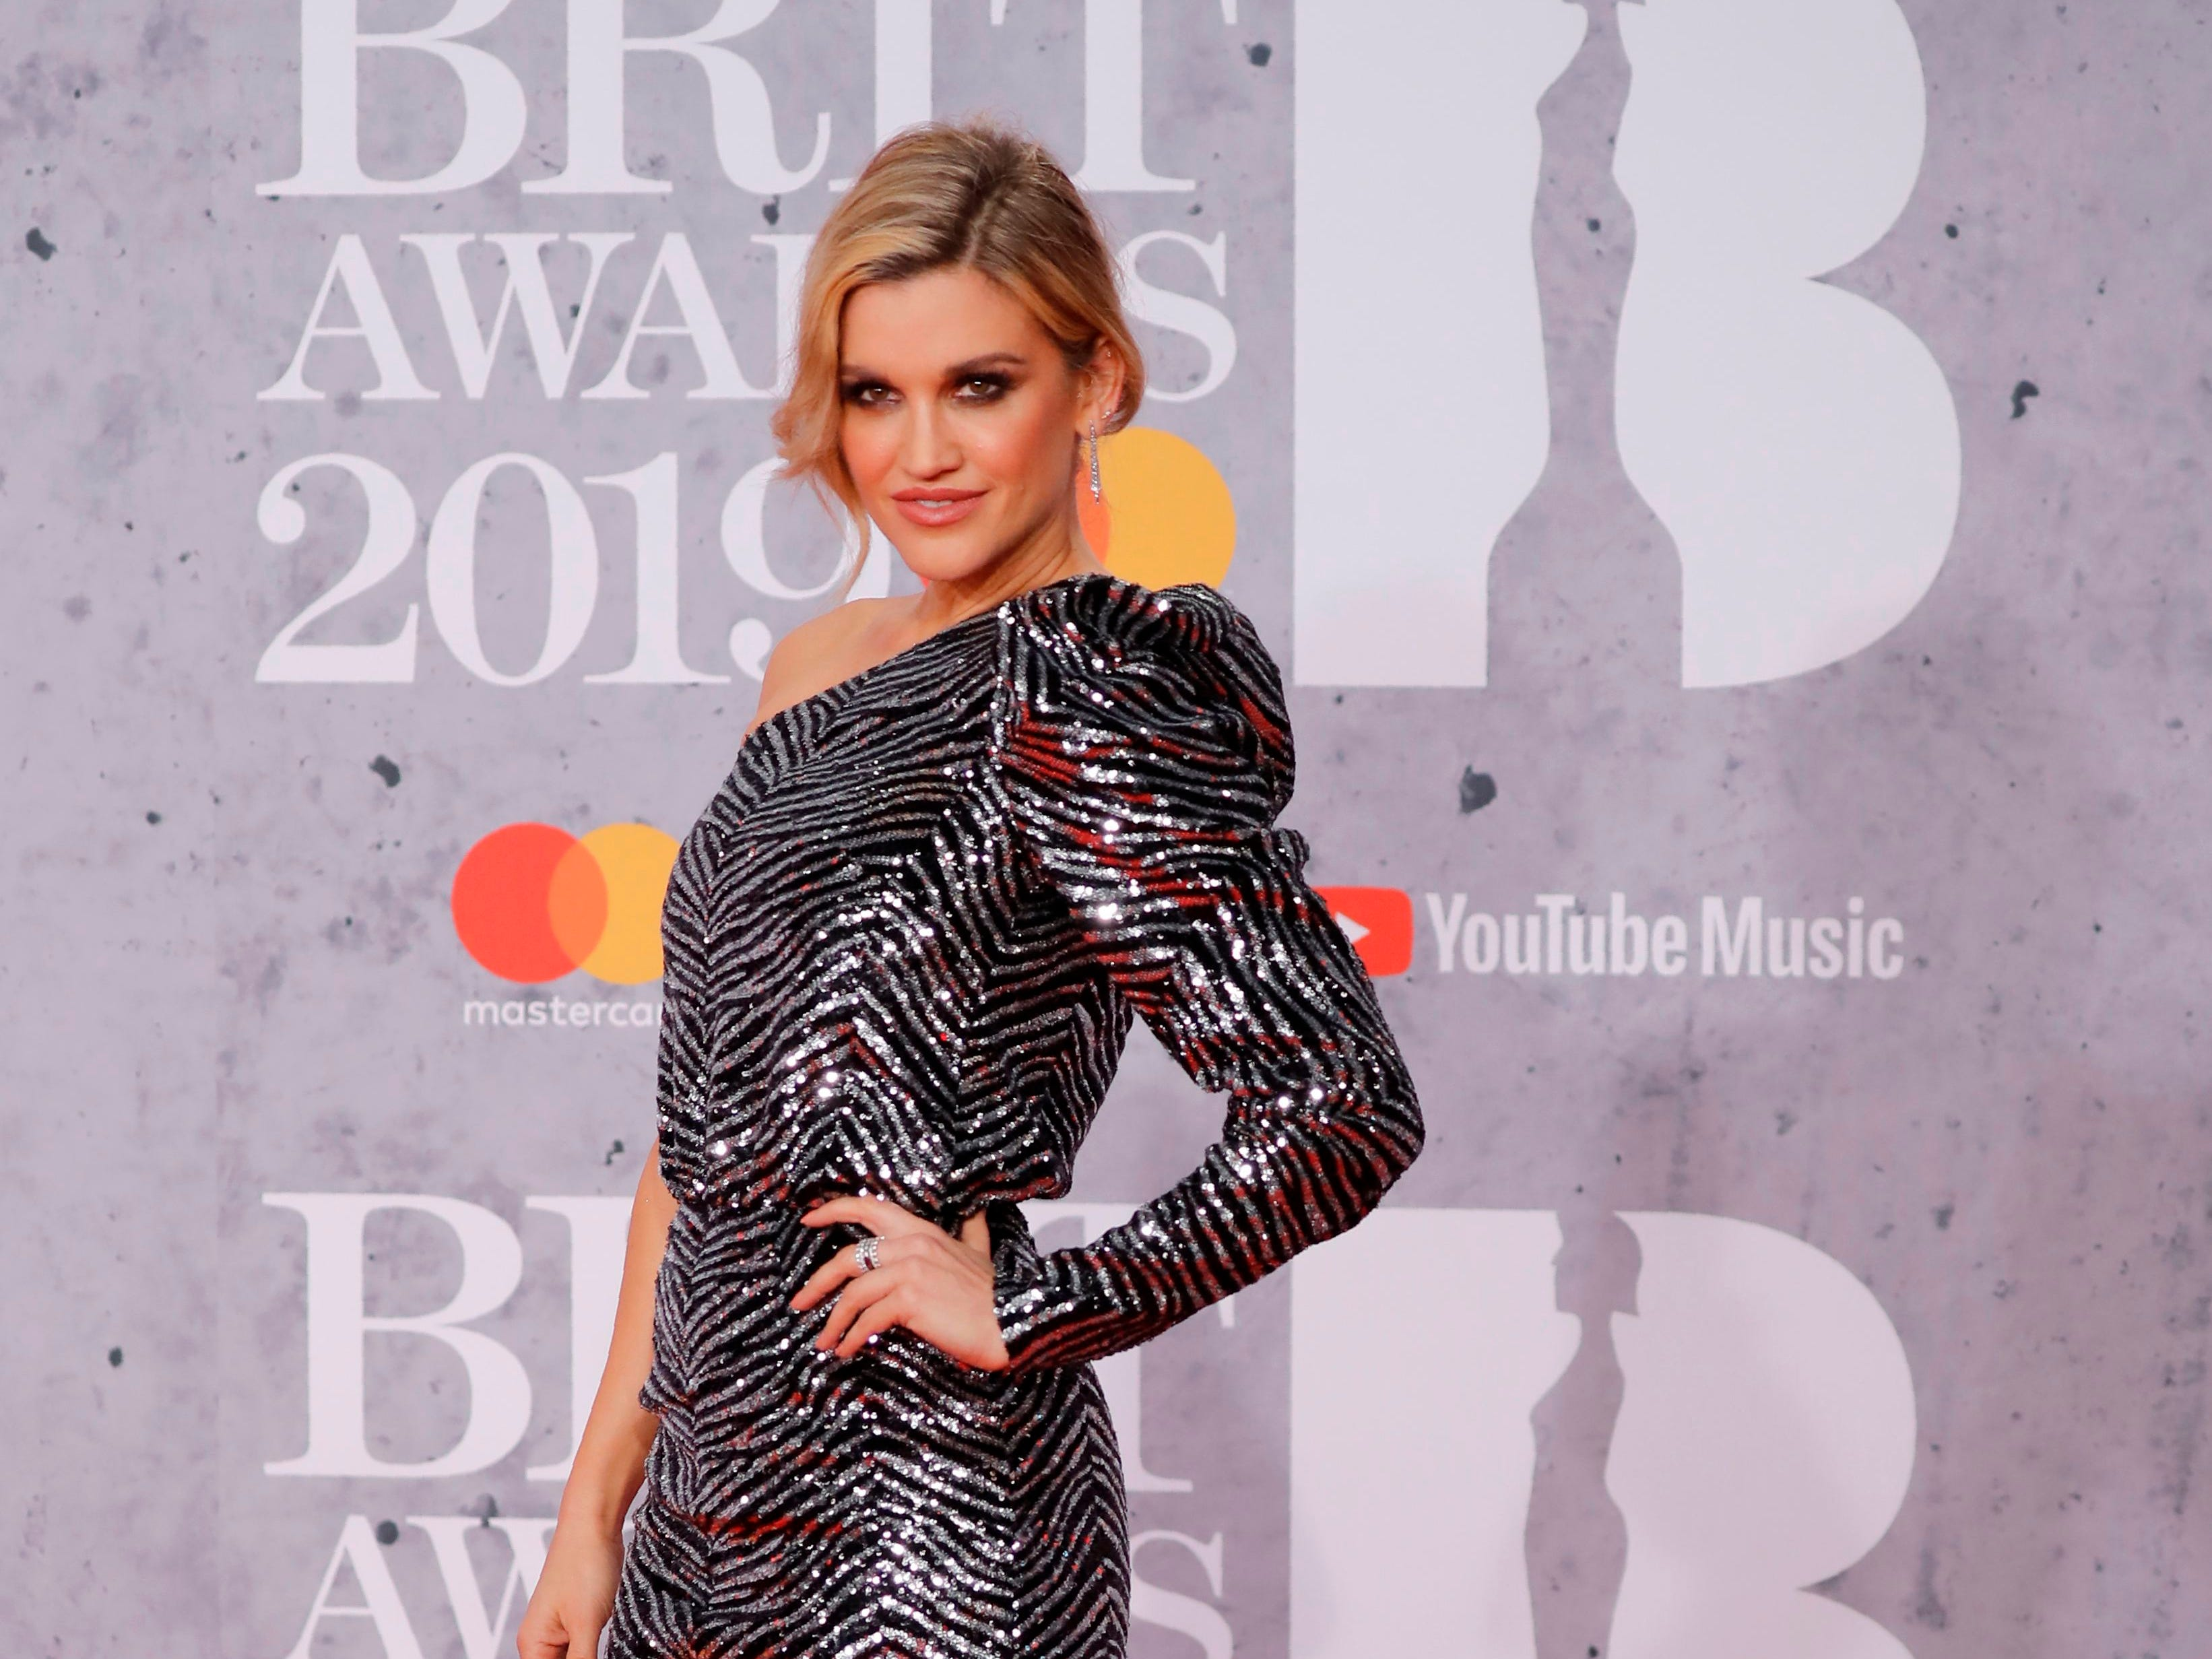 US singer-songwriter Ashley Roberts poses on the red carpet on arrival for the BRIT Awards 2019 in London on February 20, 2019. (Photo by Tolga AKMEN / AFP) / RESTRICTED TO EDITORIAL USE  NO POSTERS  NO MERCHANDISE NO USE IN PUBLICATIONS DEVOTED TO ARTISTSTOLGA AKMEN/AFP/Getty Images ORIG FILE ID: AFP_1DO1BE